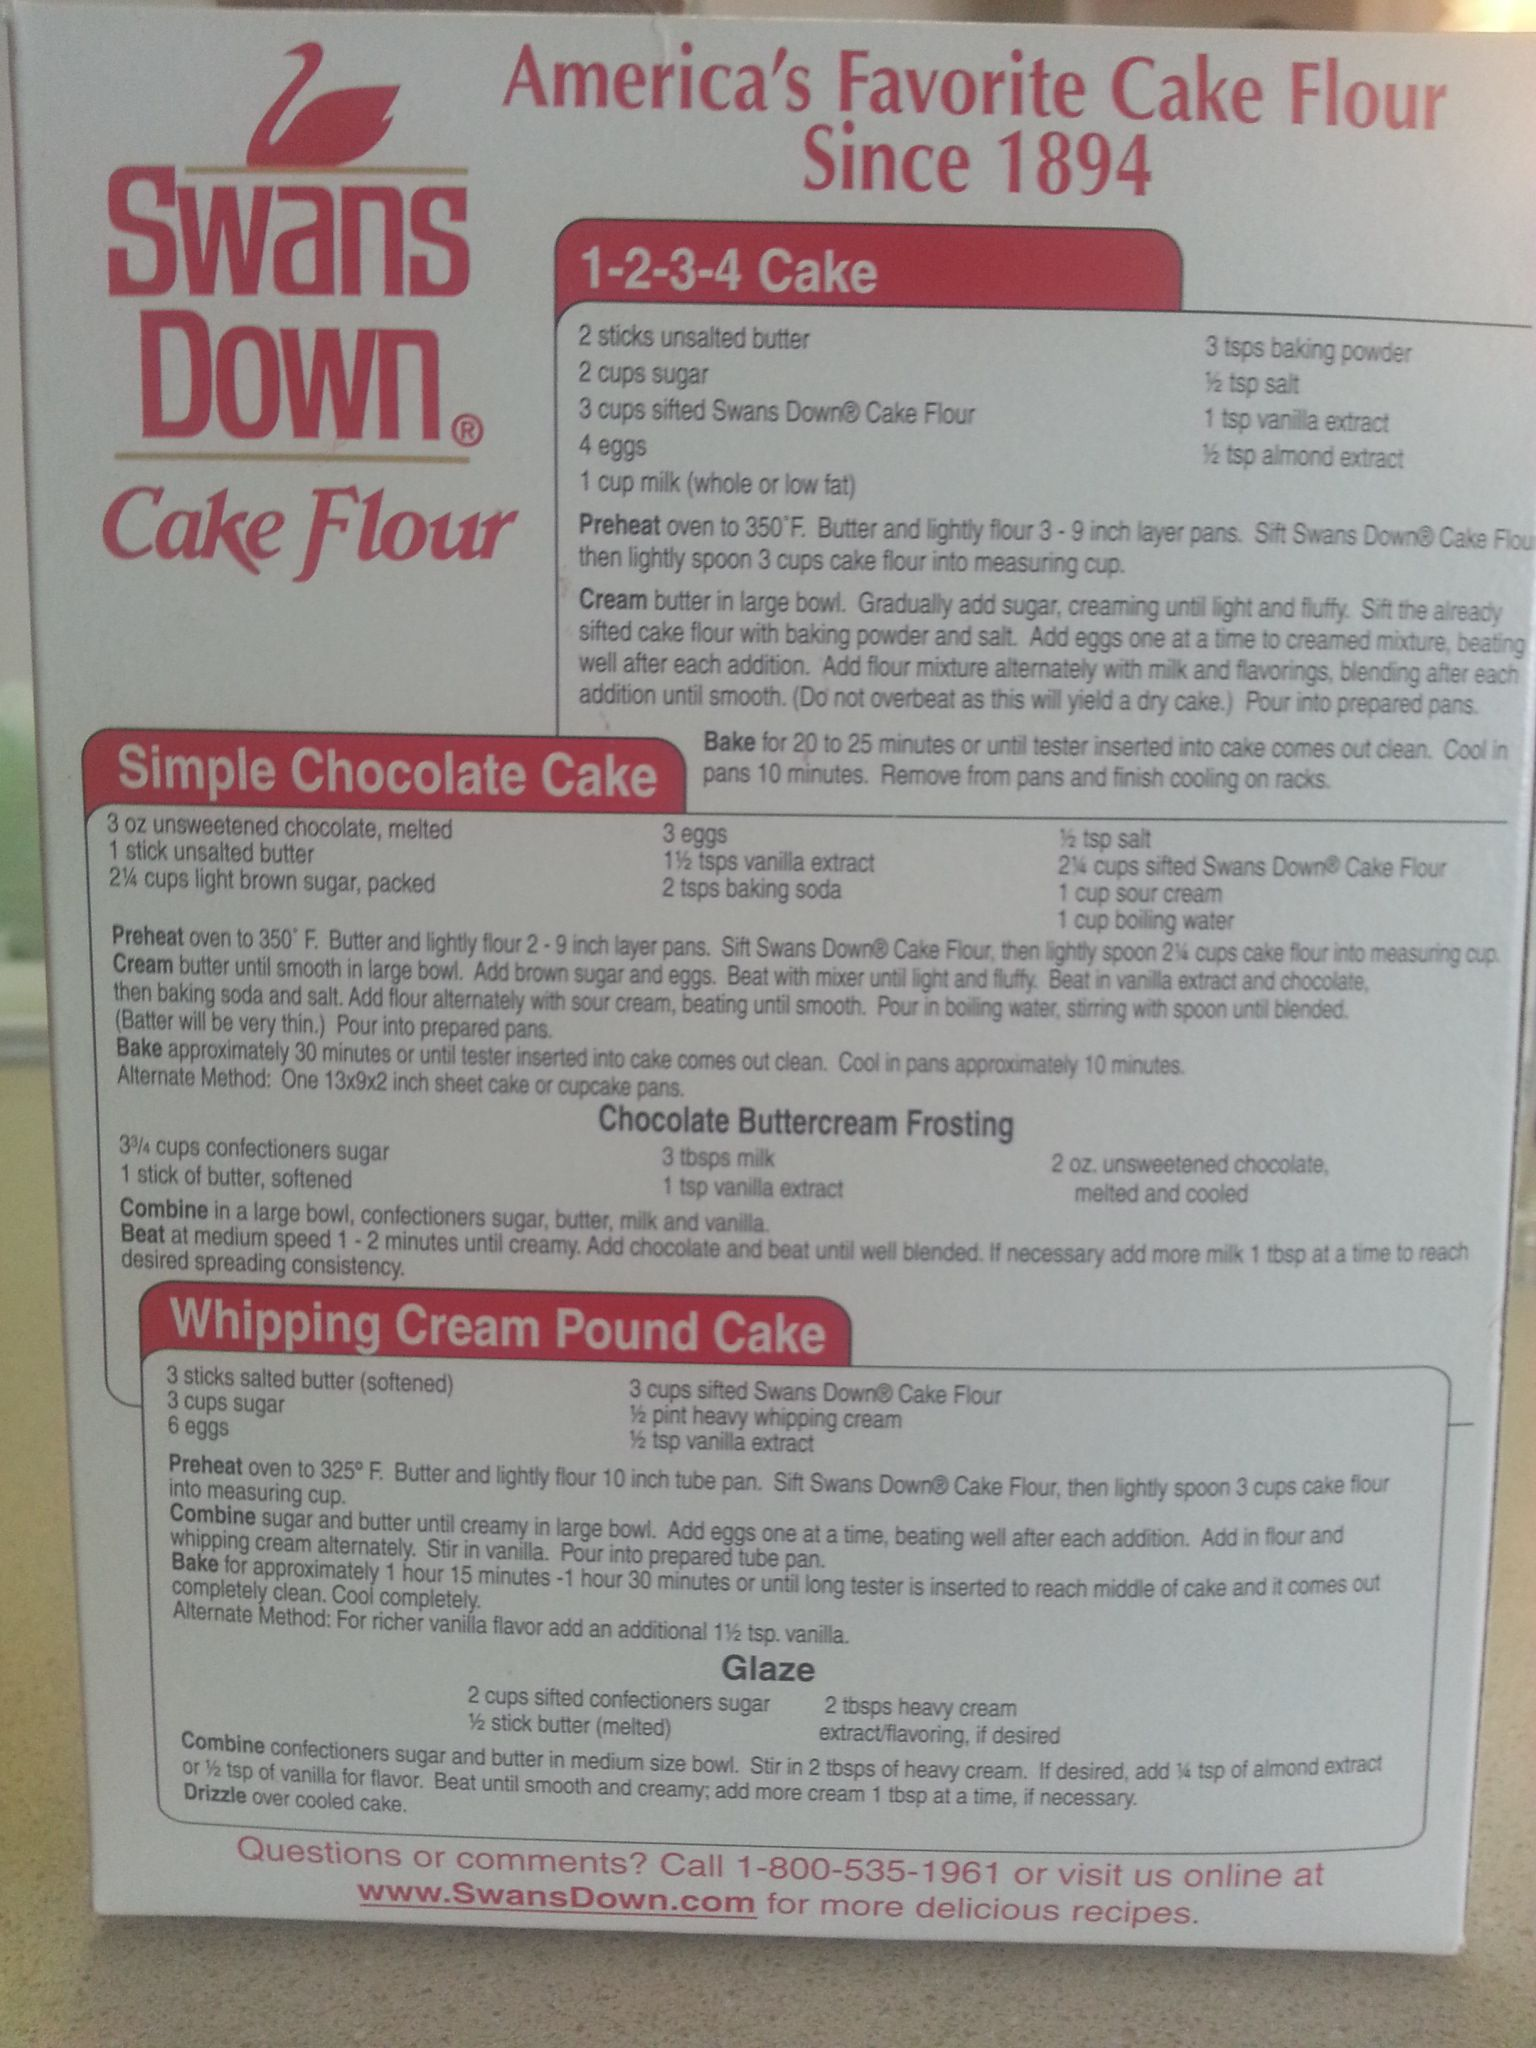 Recipes From Cake Flour Boxes There Is A Photo Of A Swansdown Box With A Recipe Called S Cake Flour Recipe Swans Down Cake Flour Swans Down Cake Flour Recipe